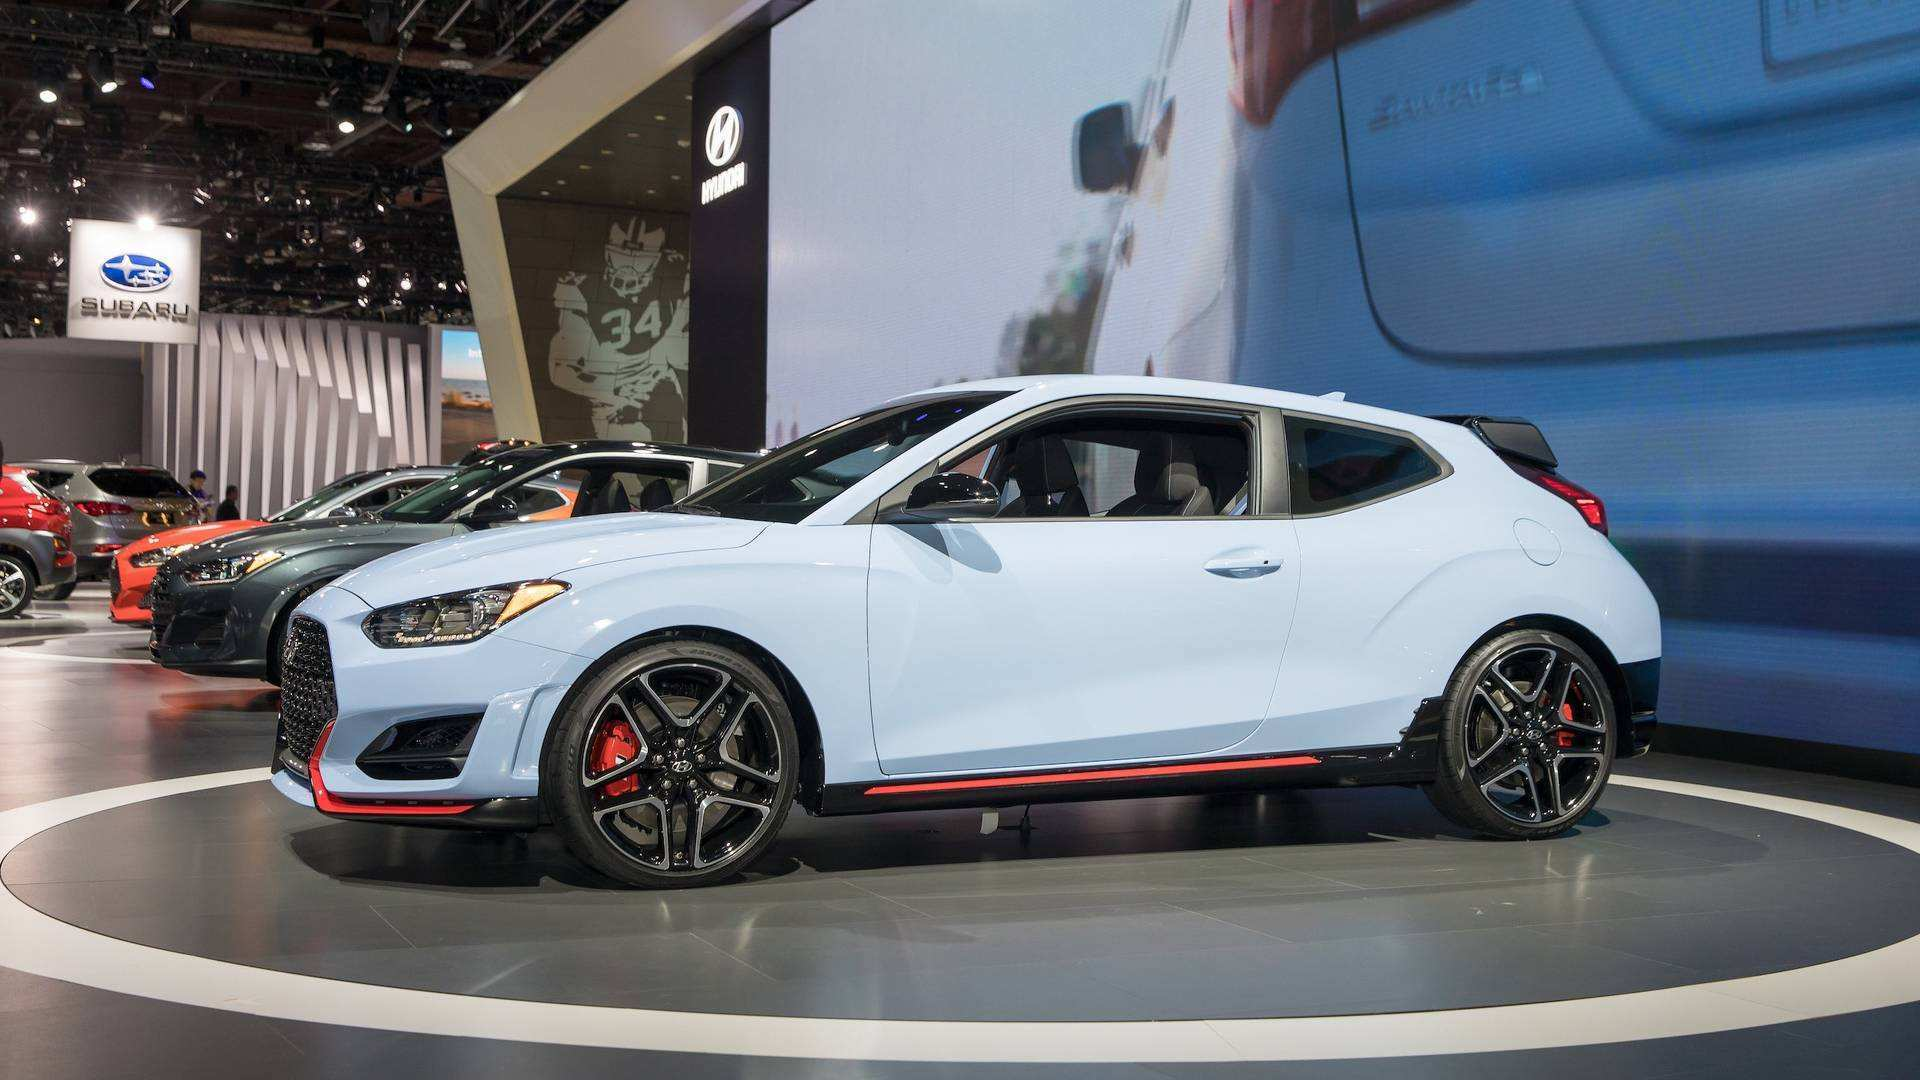 57 All New 2019 Hyundai Veloster N Exterior and Interior by 2019 Hyundai Veloster N